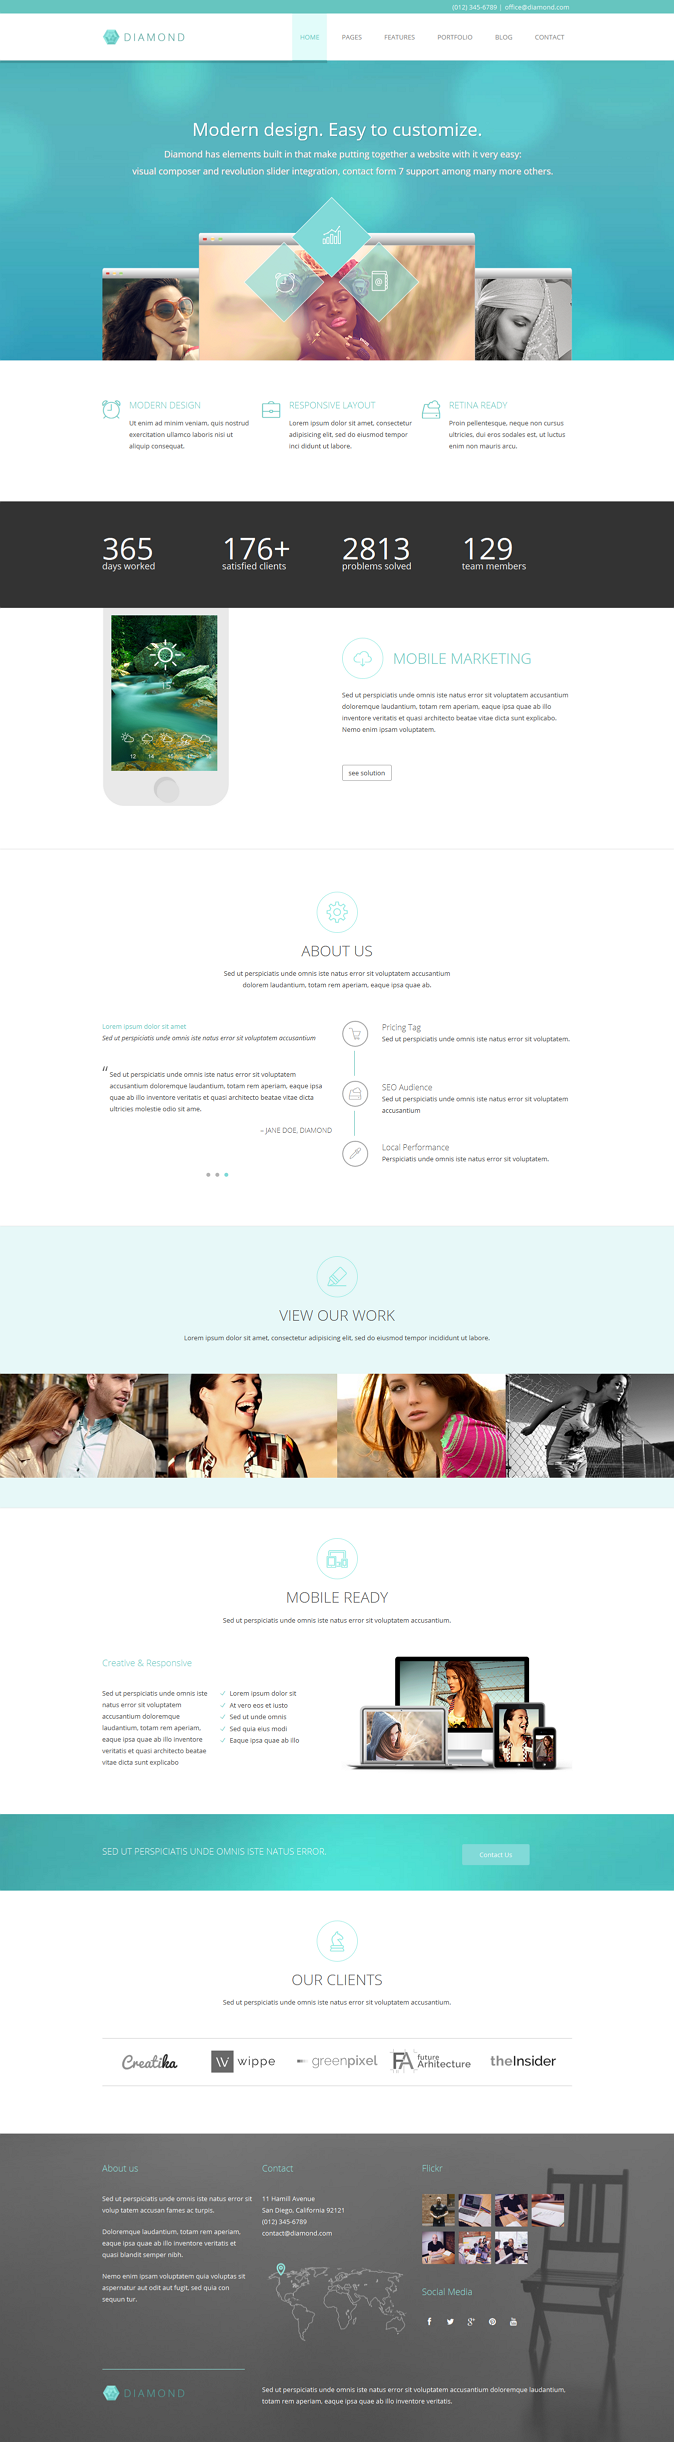 Diamond is an responsive Business WordPress Theme with clean and highly functional HTML template ...